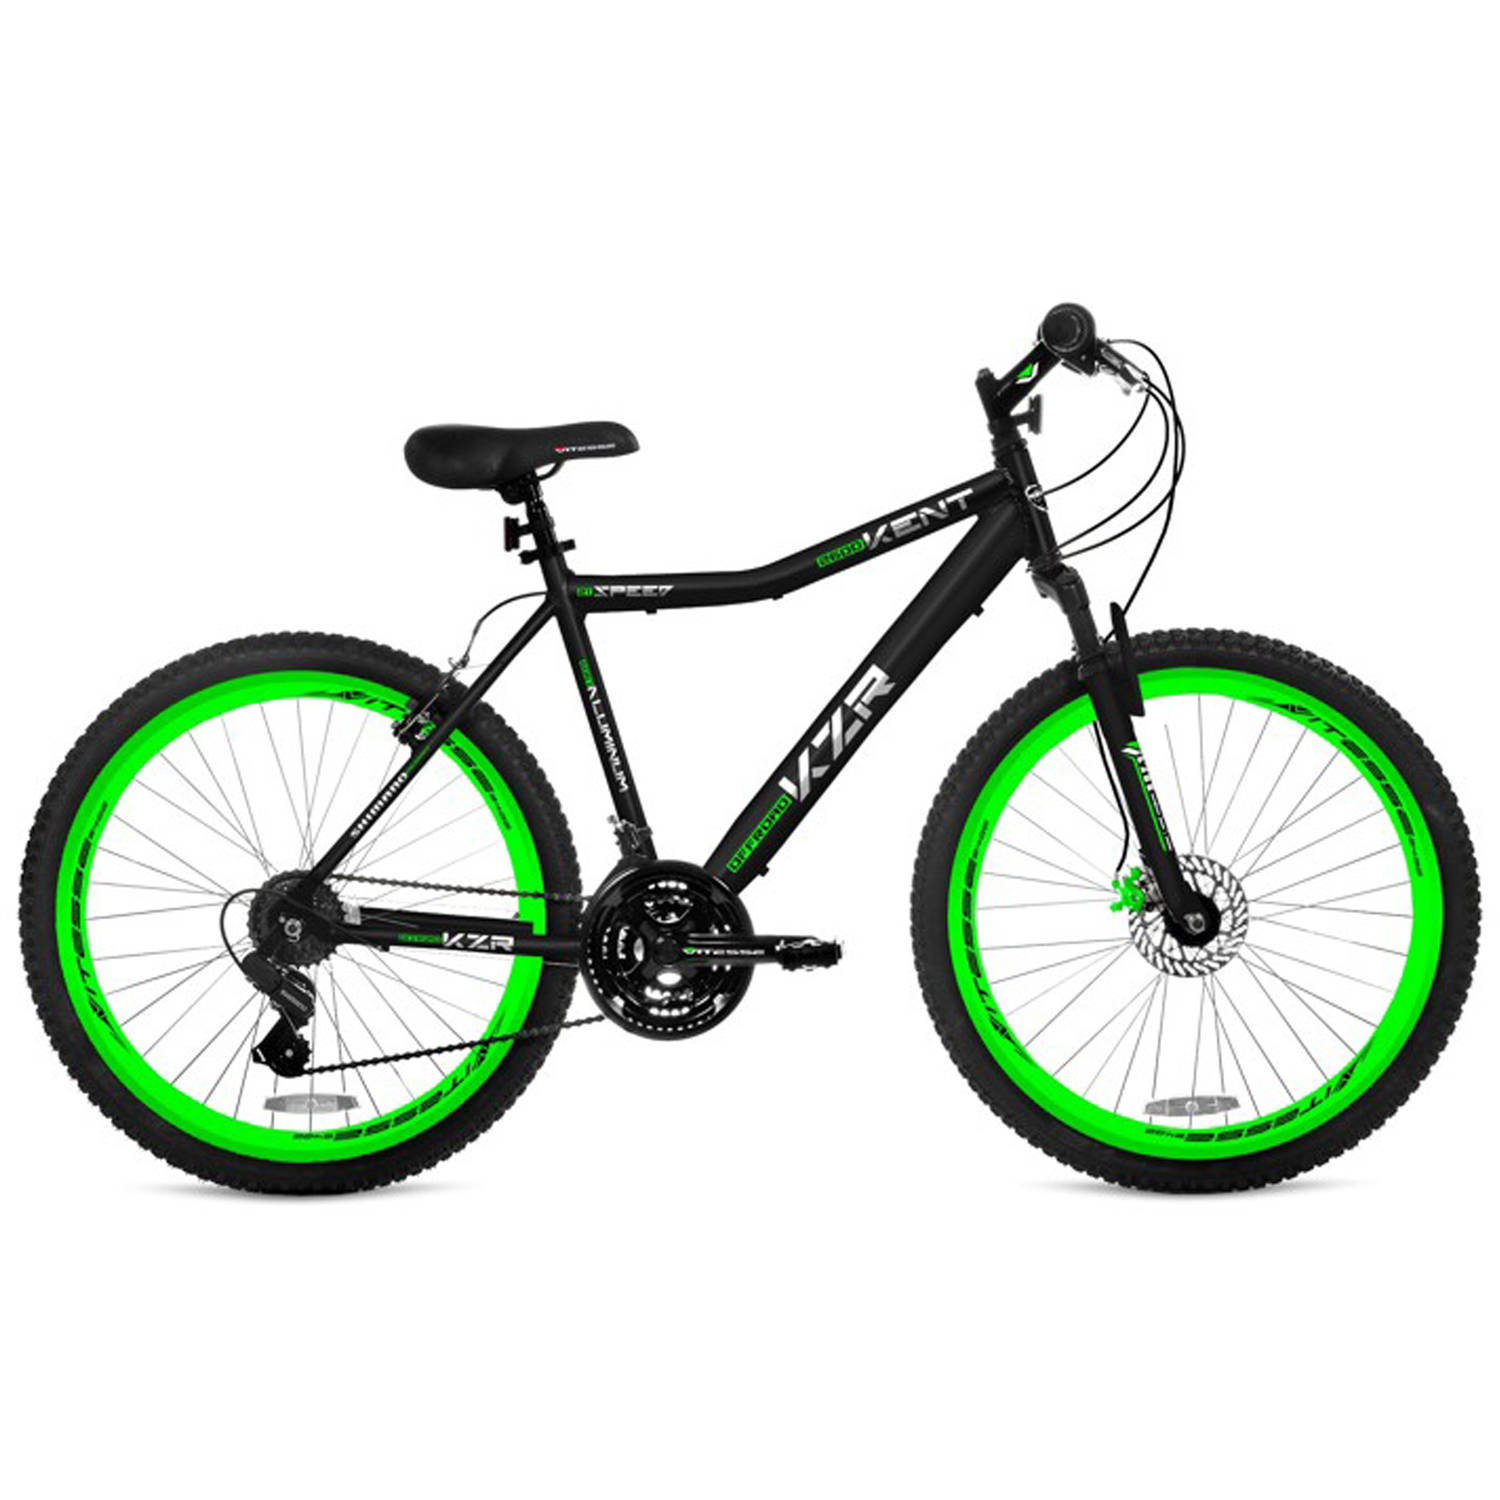 "26"" Men's Kent KZR Mountain Bike, Black/Green"